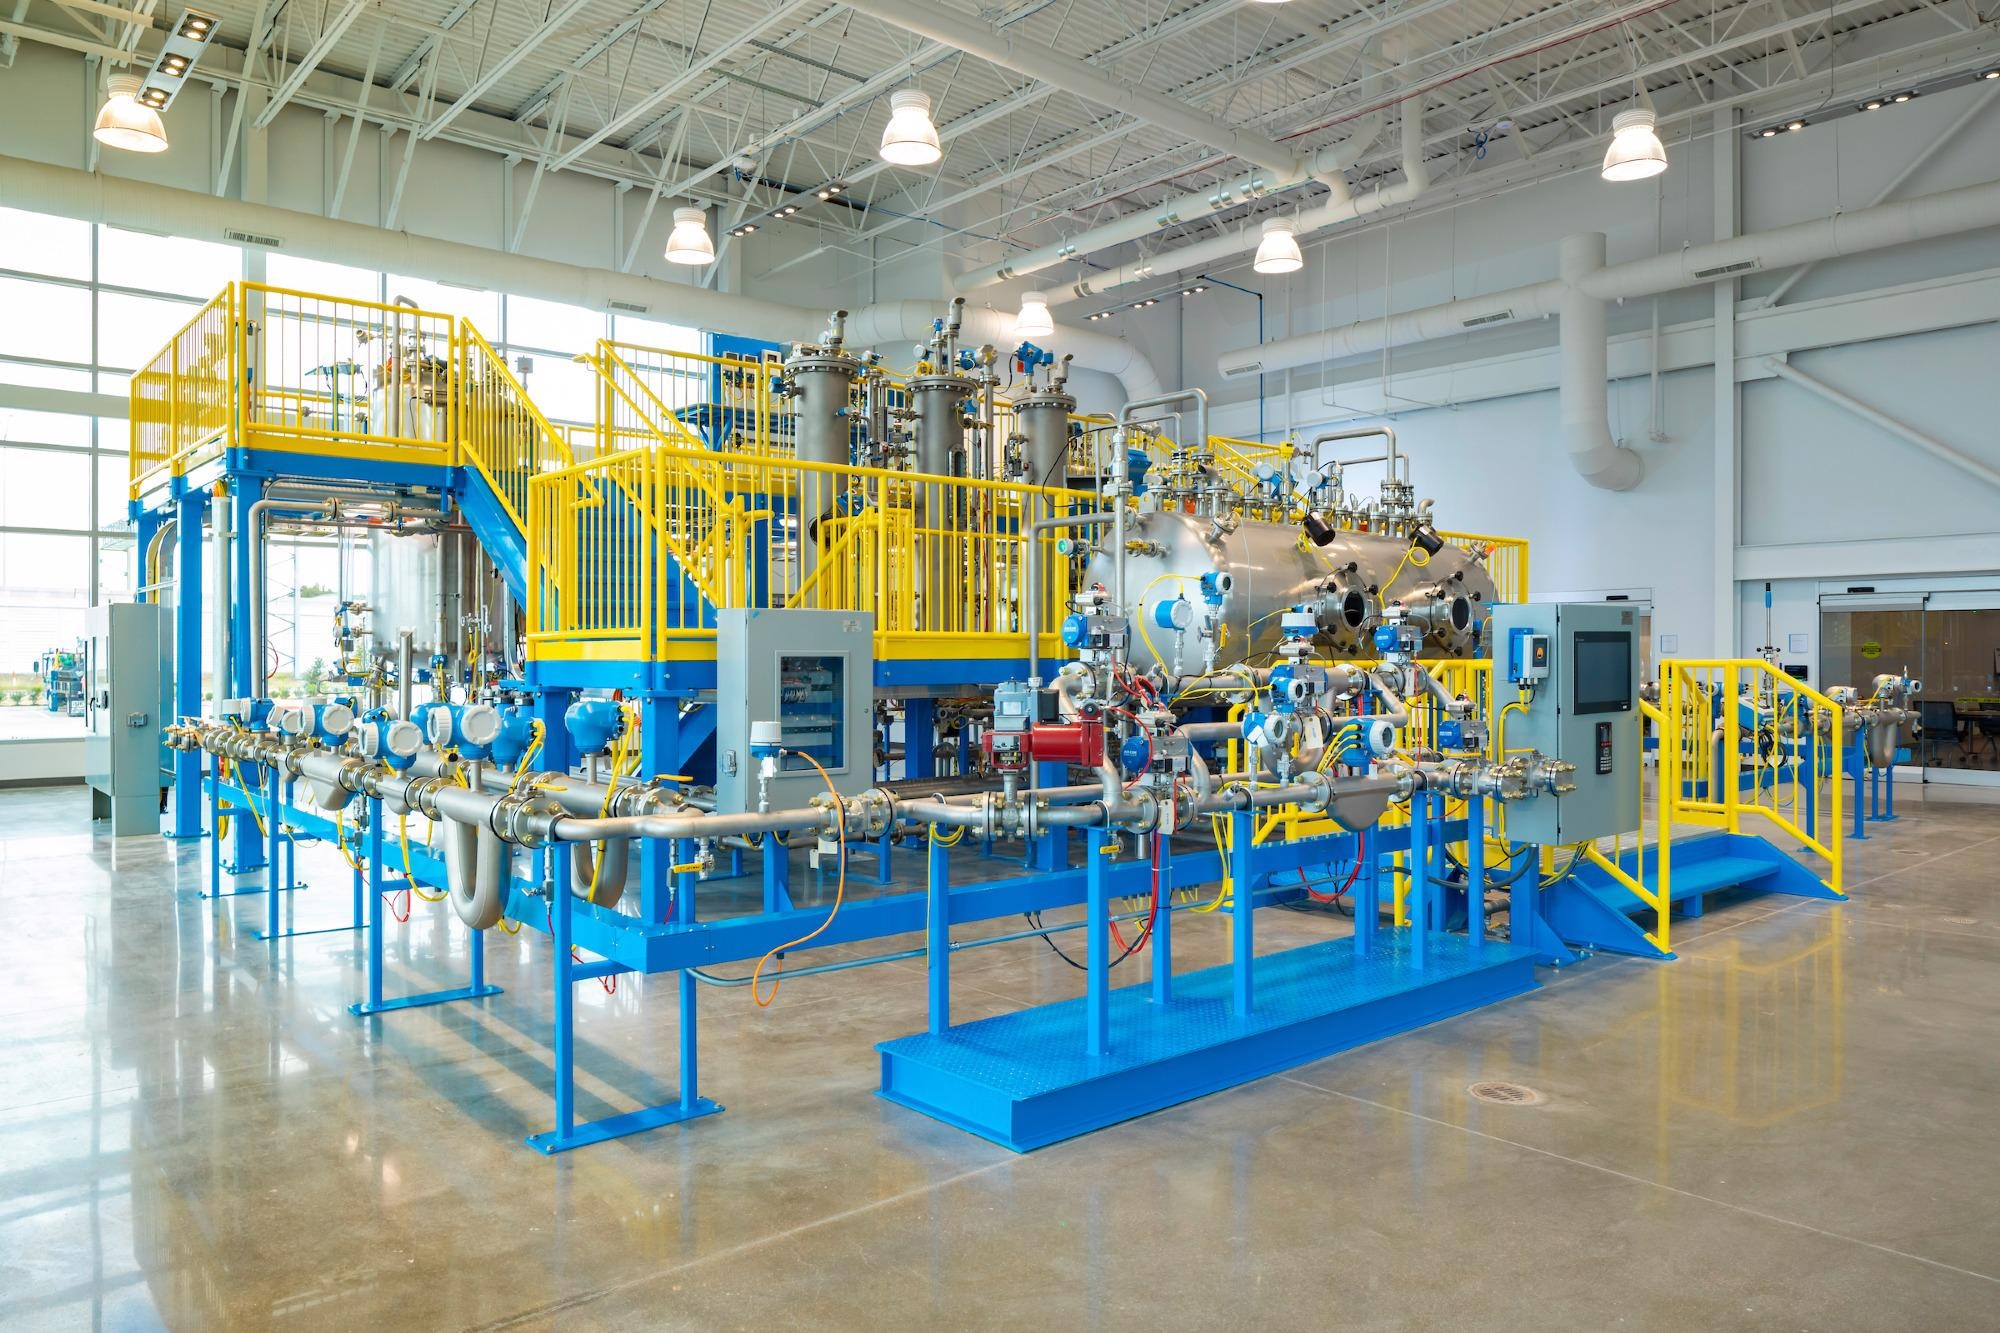 Training Collaboration Announced By Endress+Hauser and UT-PETEX